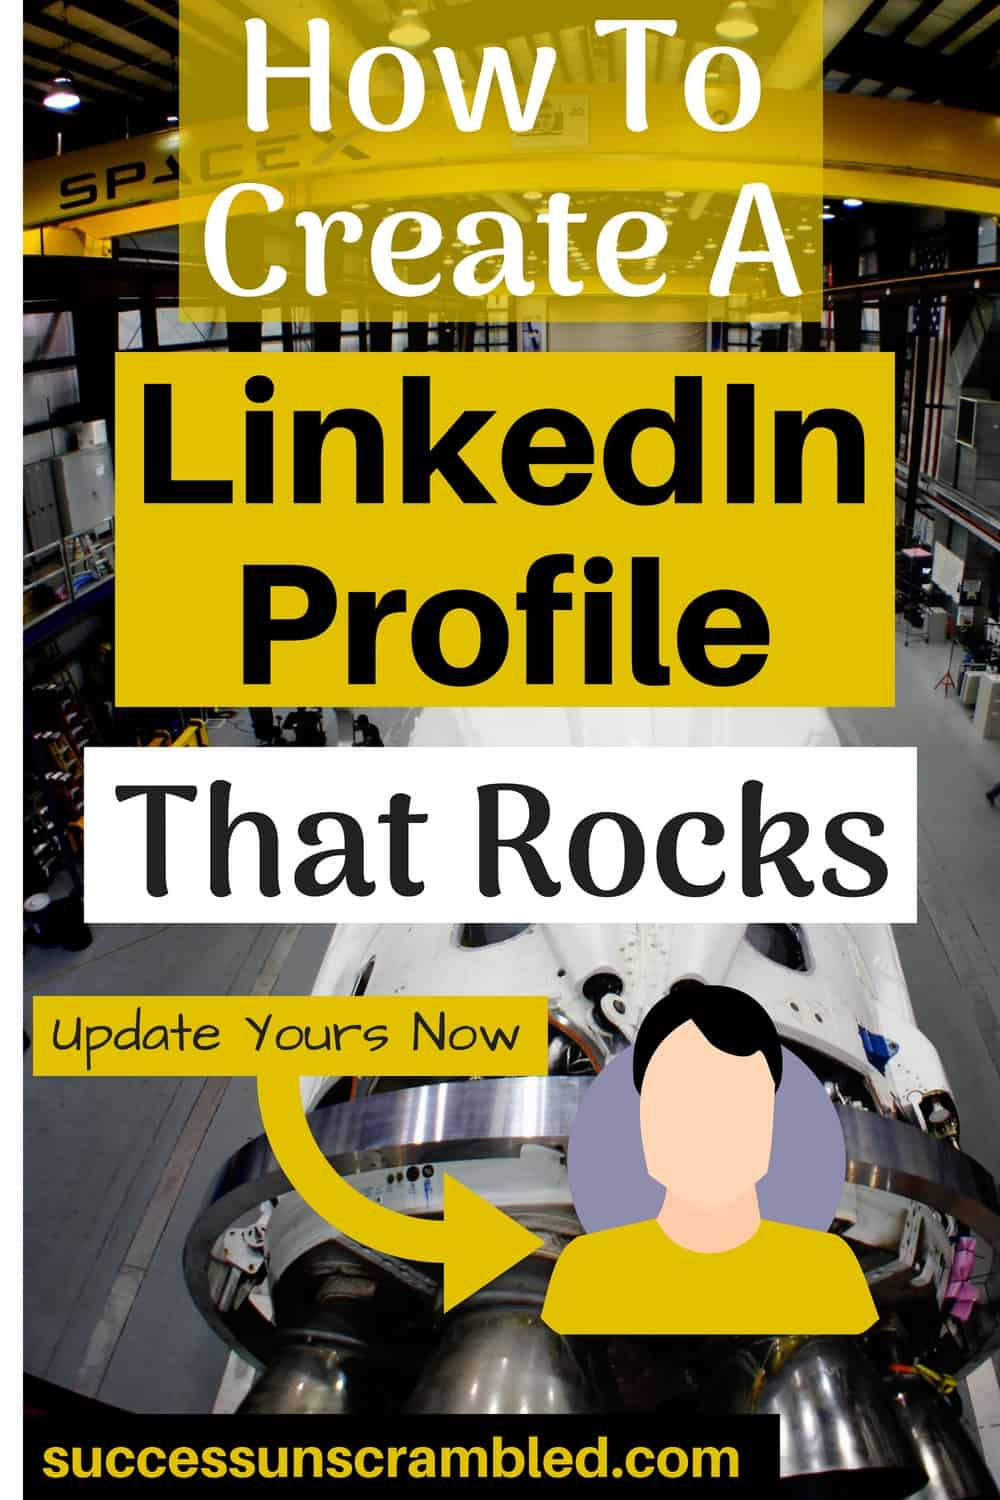 How To Create A LinkedIn Profile That Rocks